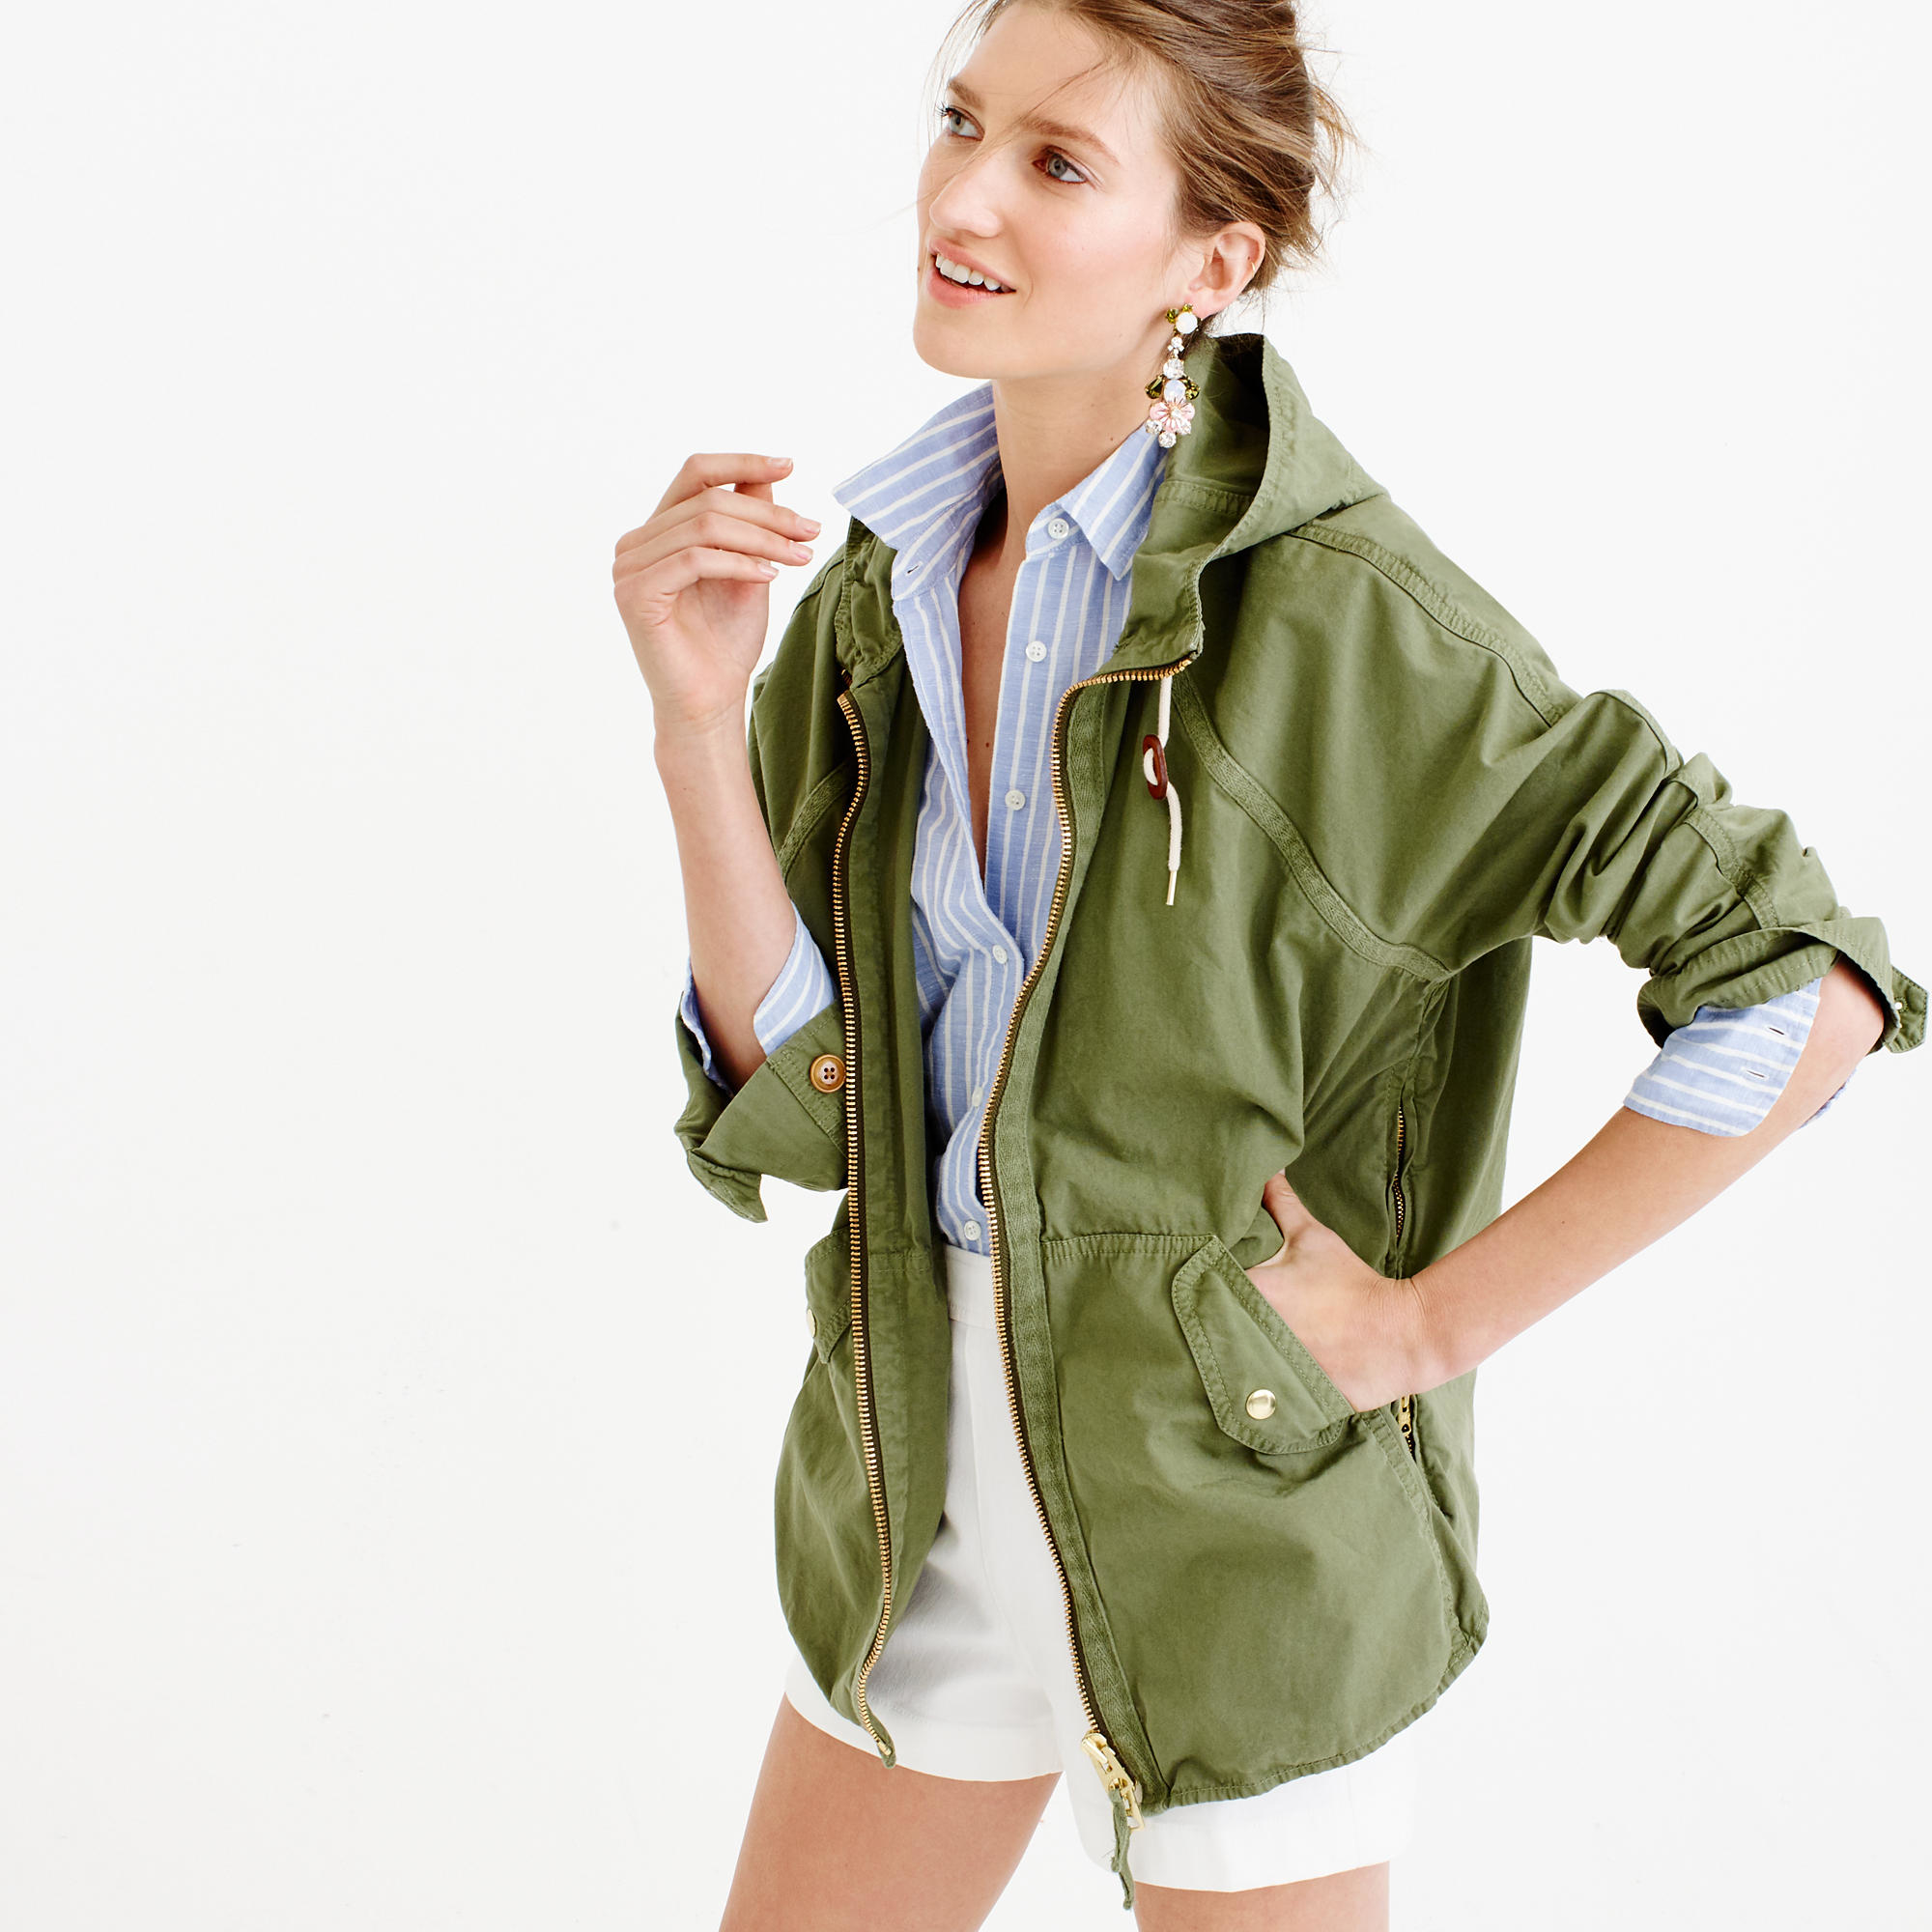 Jcrew Cotton Convertible Zip Anorak Jacket In Green - Lyst-2309